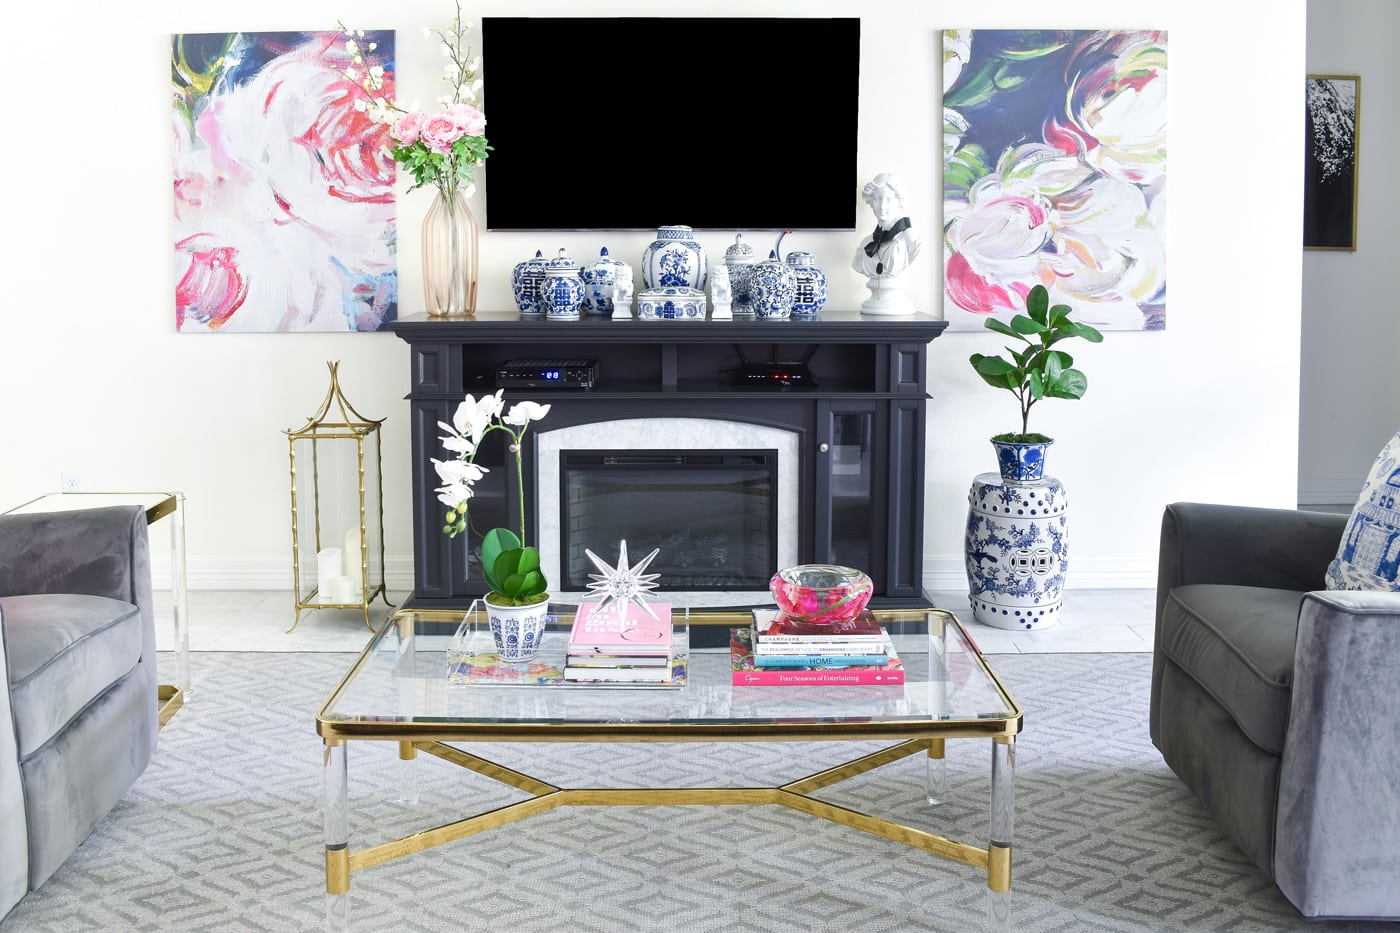 Pink, blue and white living room decor for summer